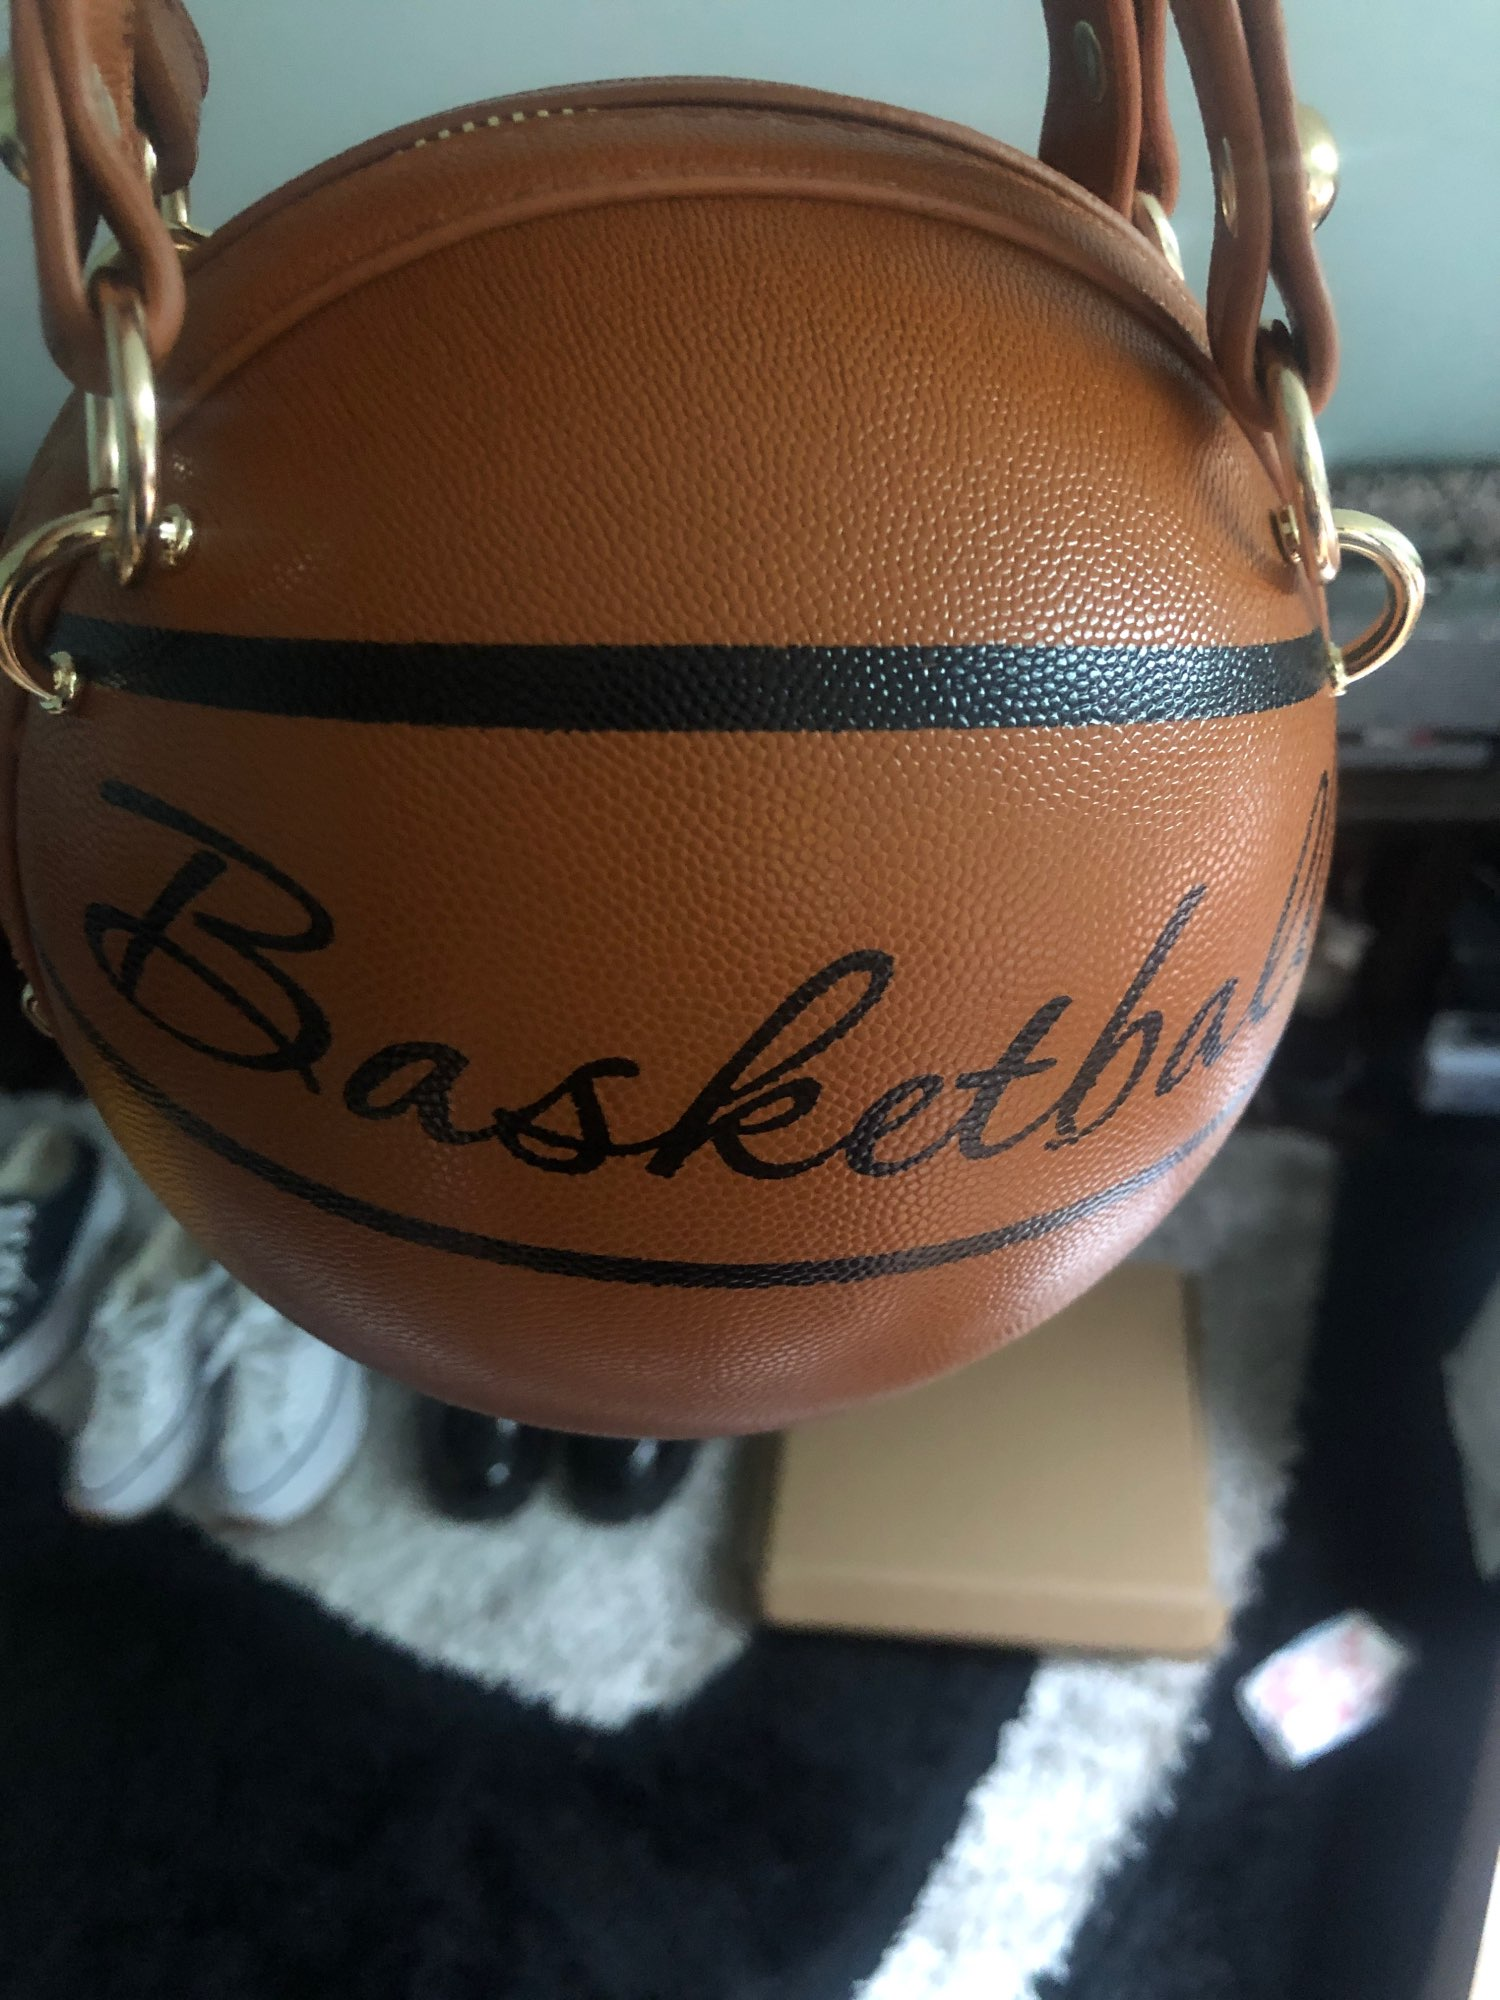 1Pcs Ball Purses For Teenagers Women Shoulder Bags Crossbody Chain Hand Bags Personality Female Leather Pink Basketball Bag photo review